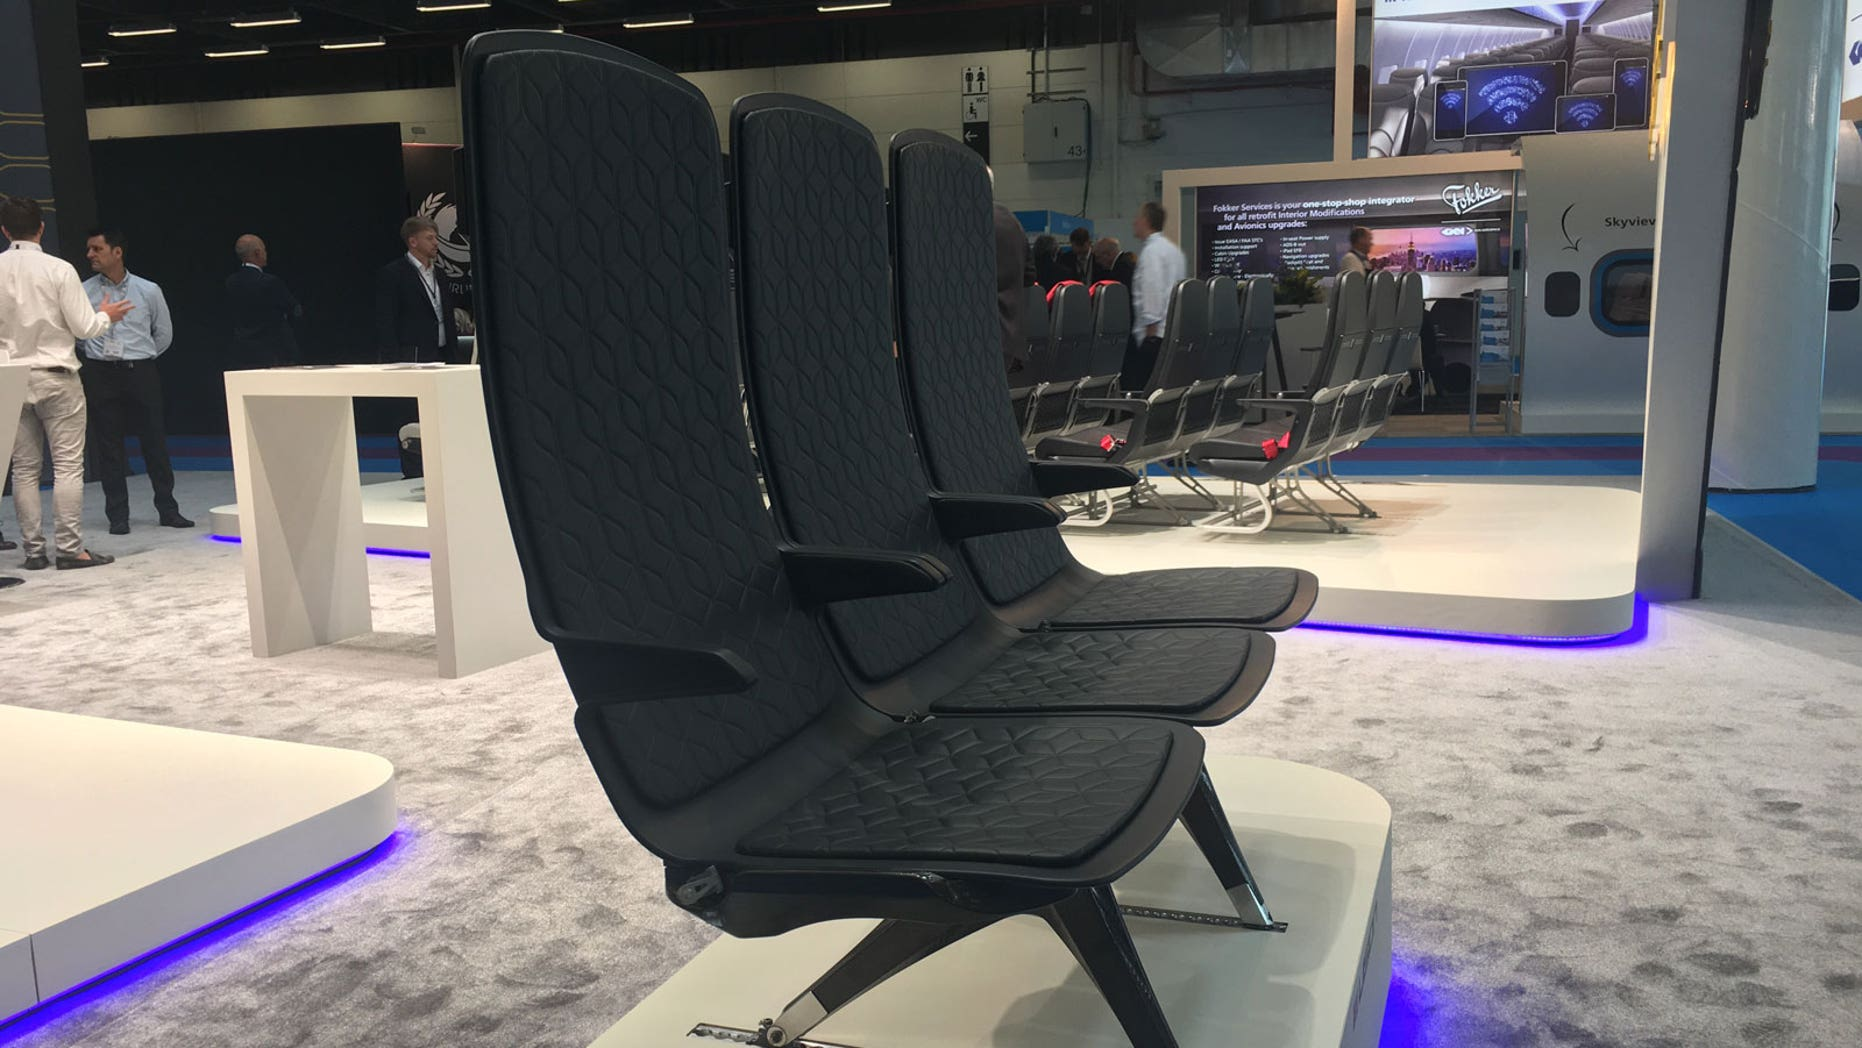 Vision 2030 seats are about half as thick as an aircraft meal tray.